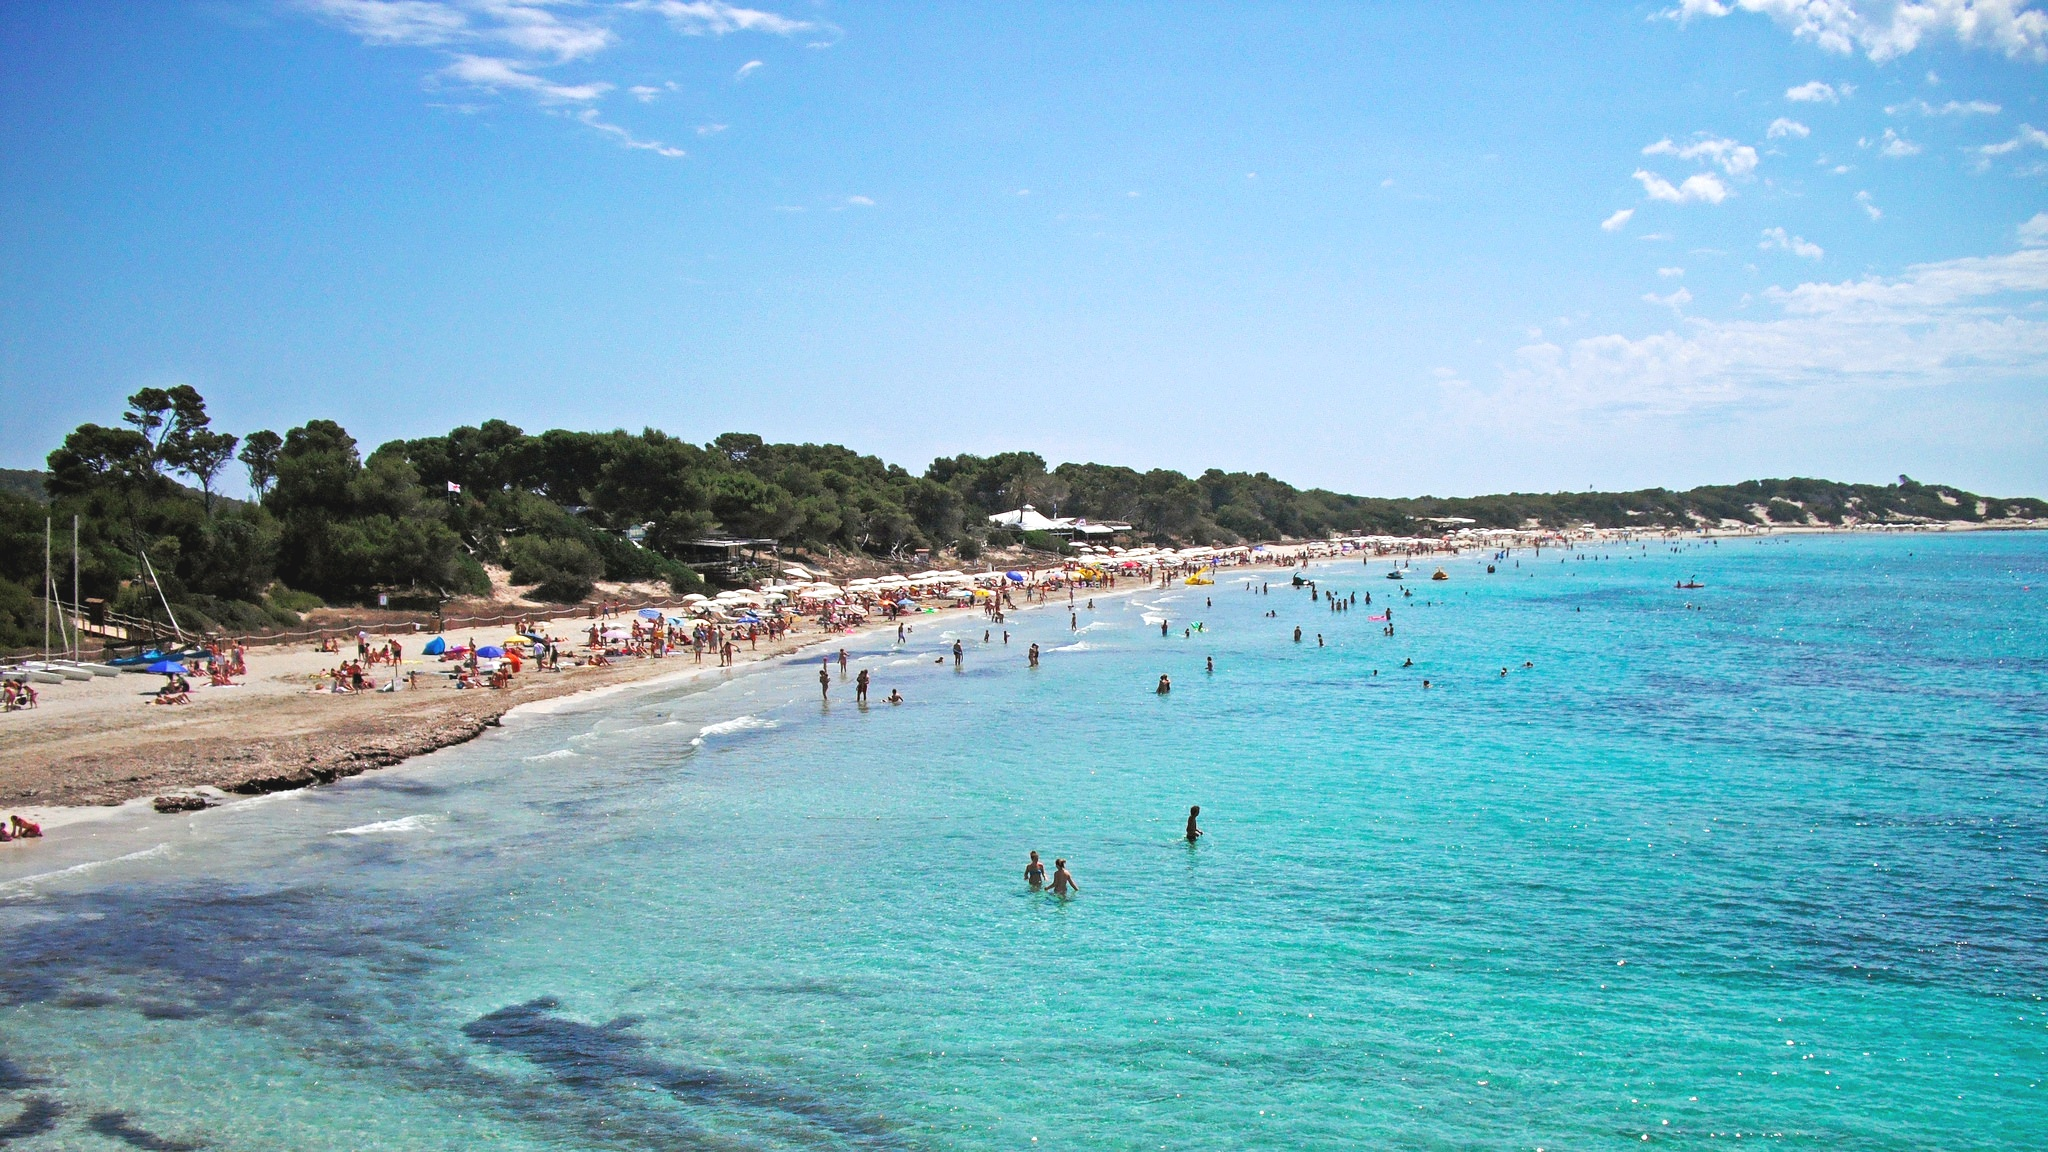 Ibiza beaches: crazy nightlife & haven of peace